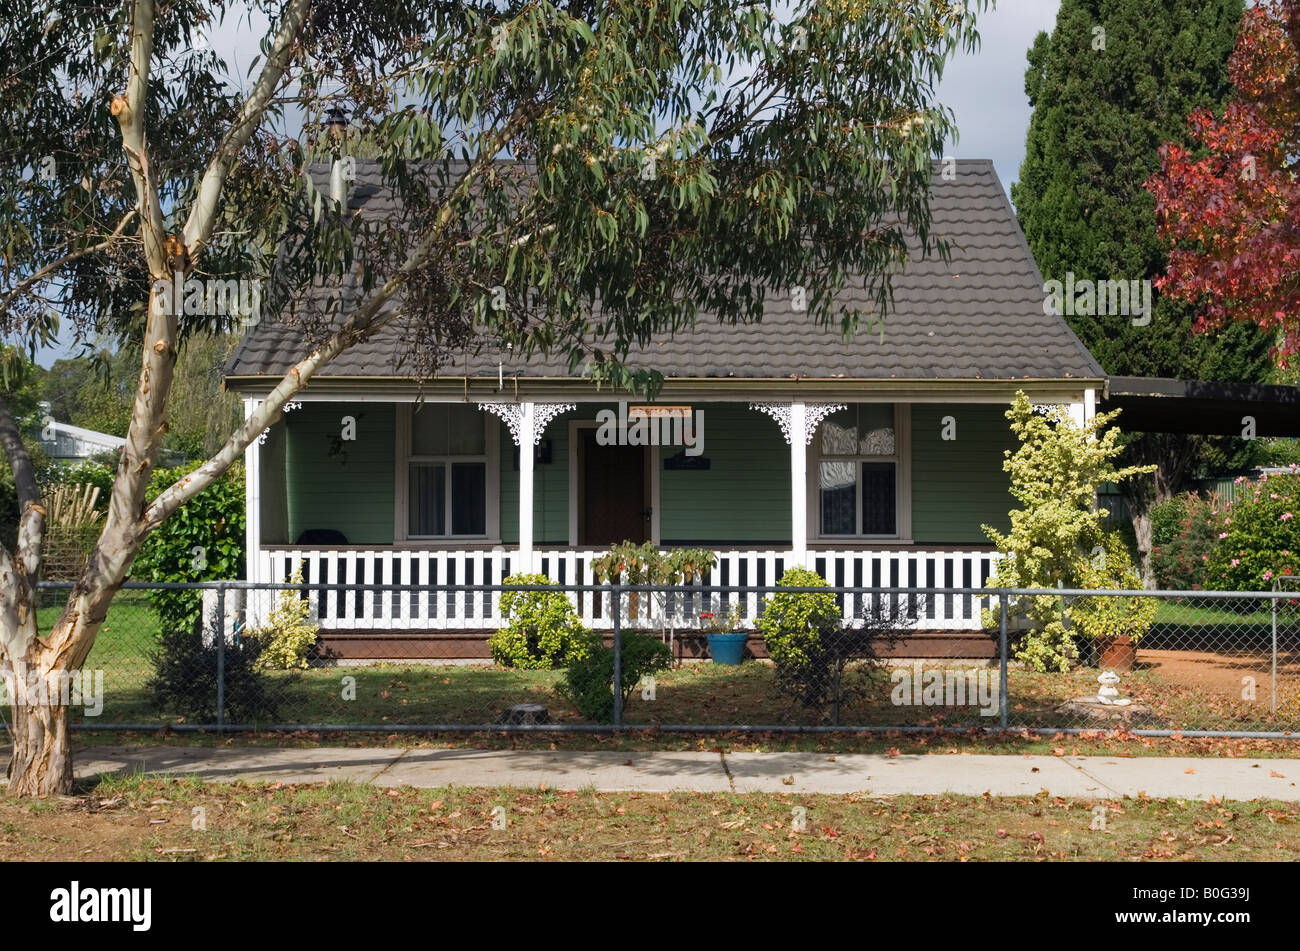 Australian country town cottage - Stock Image